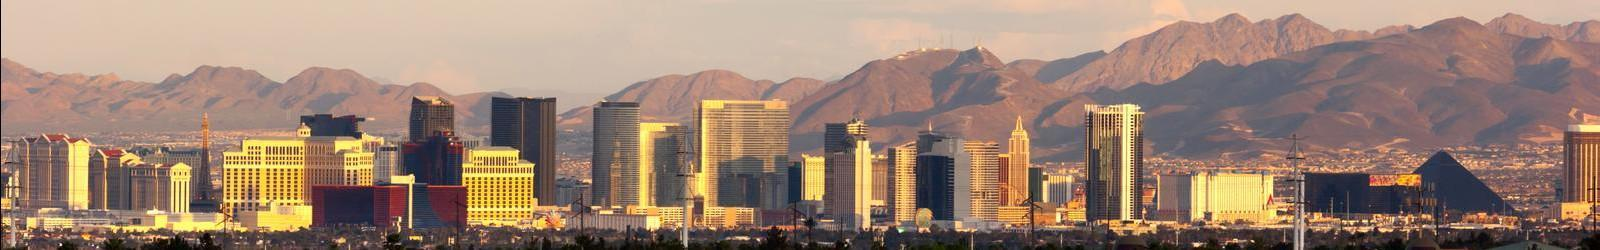 Depression therapists in Las Vegas, Nevada